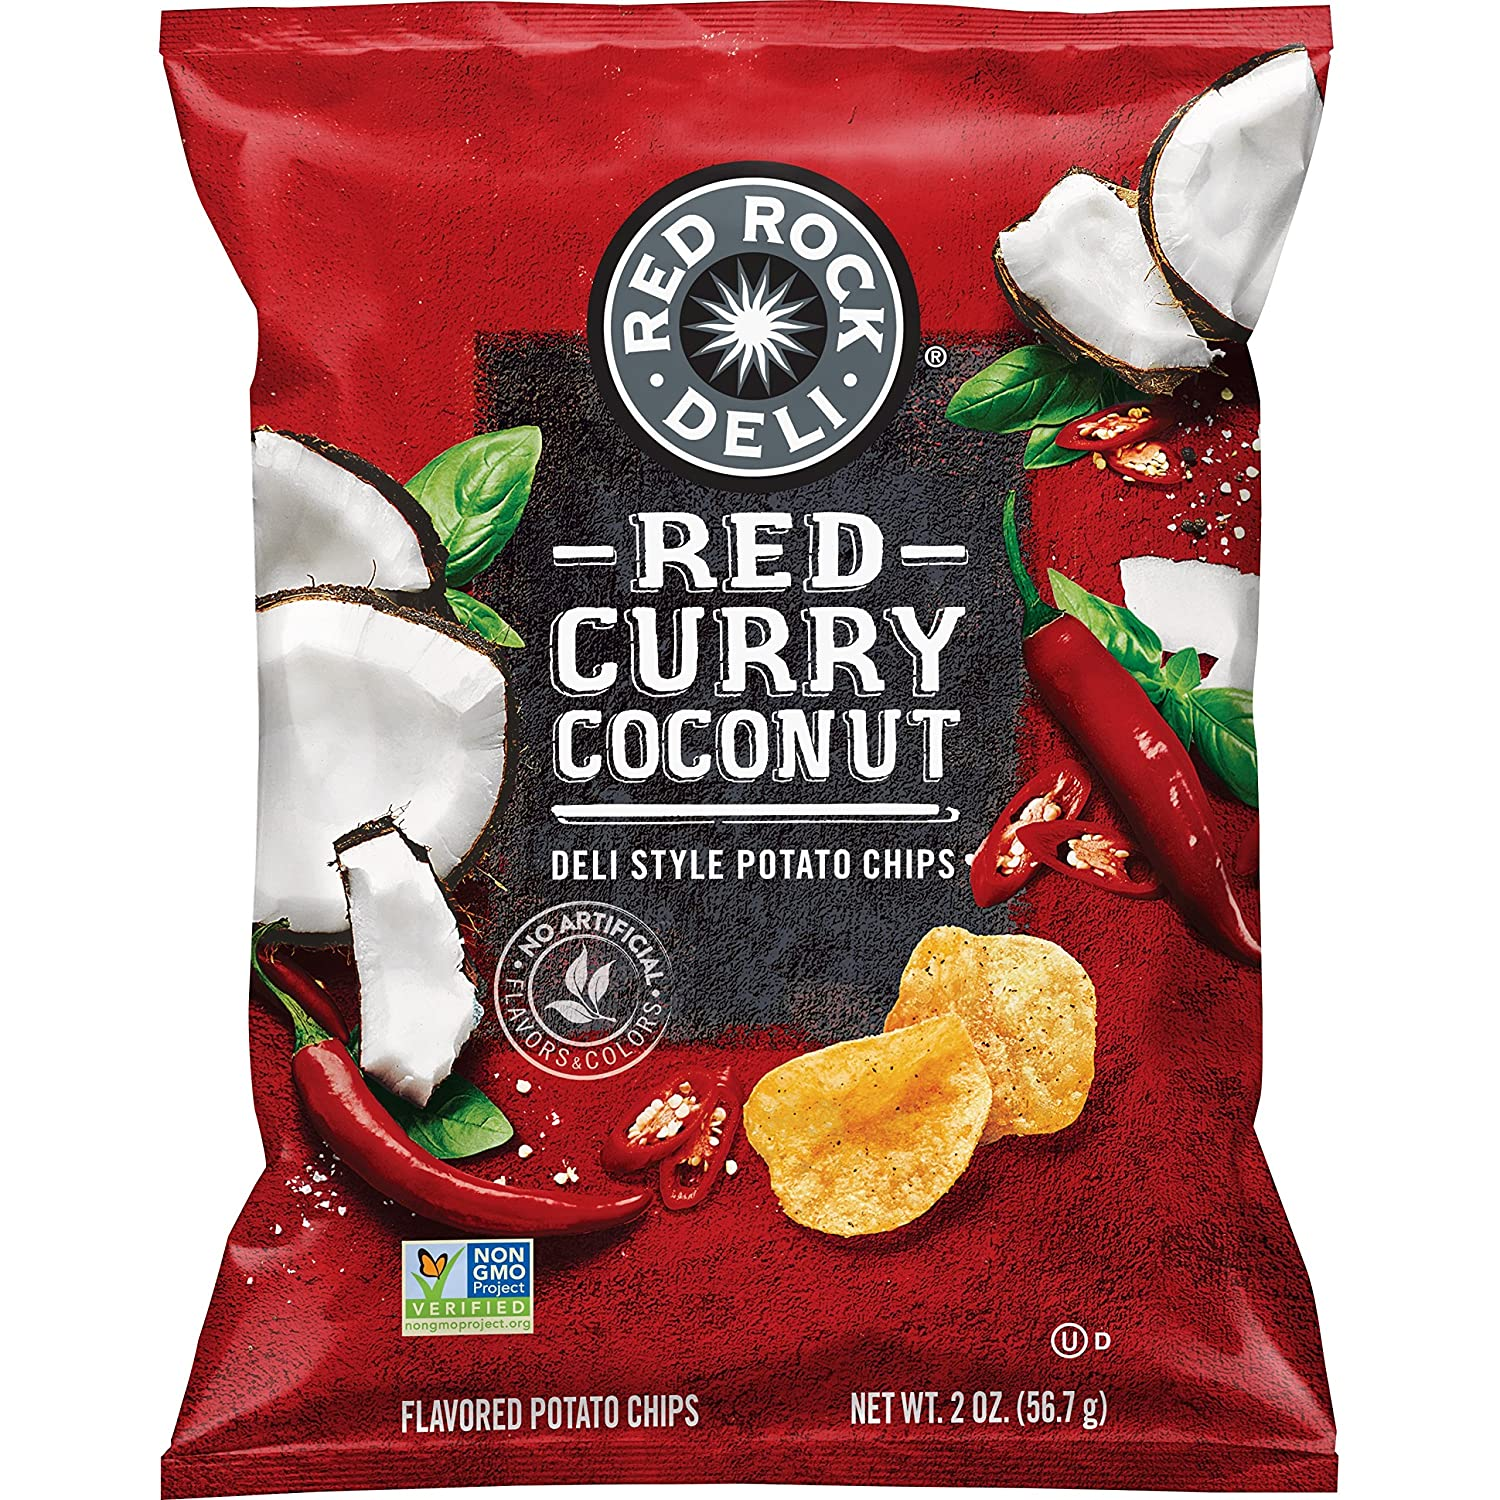 Red Rock Deli Style Potato Chips, Red Curry Coconut, 2 Ounce (12 Count)